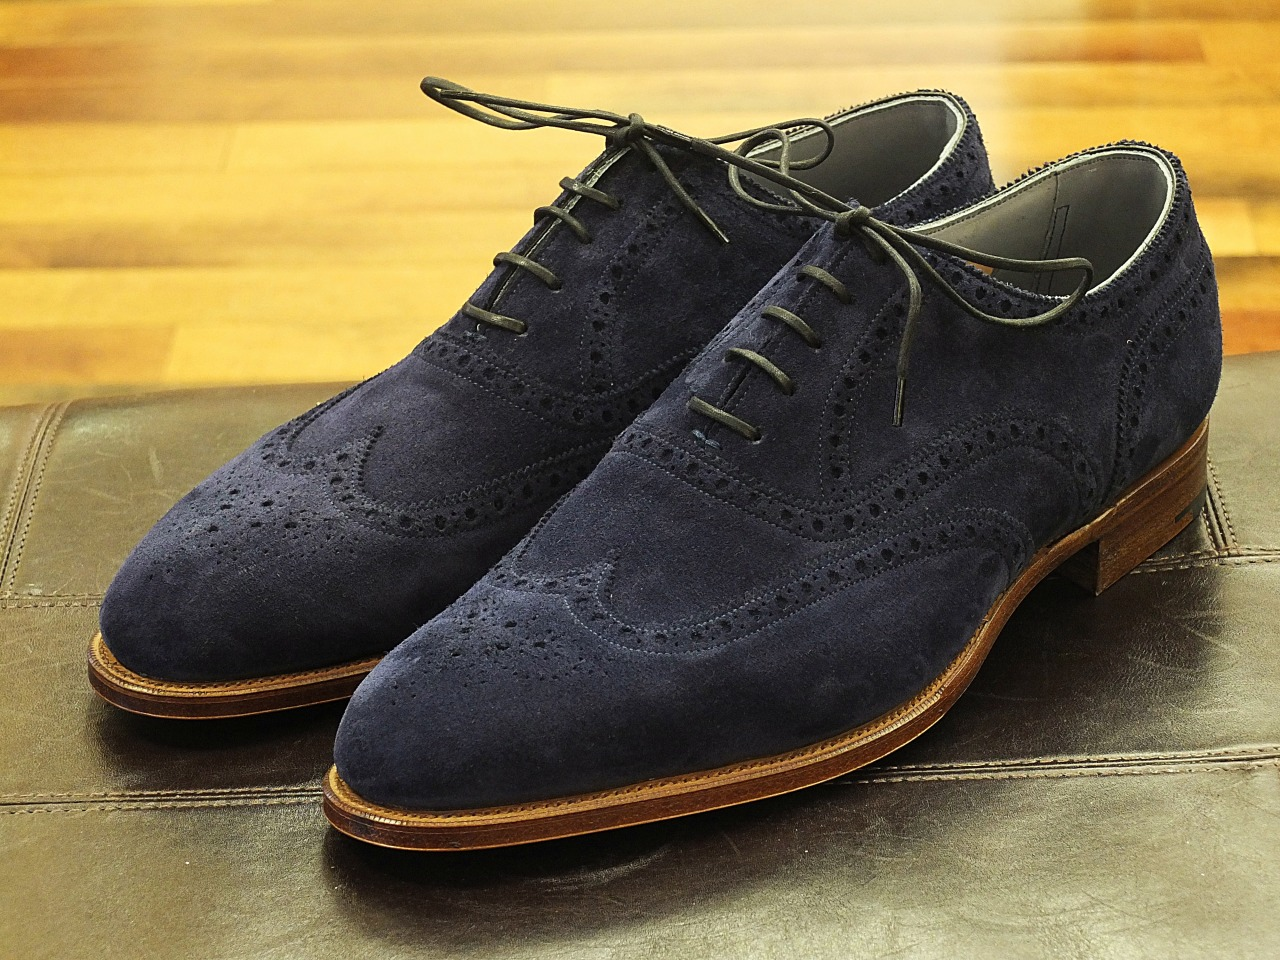 Edward Green Malvern in indigo suede on the 82 last with natural edged soles.